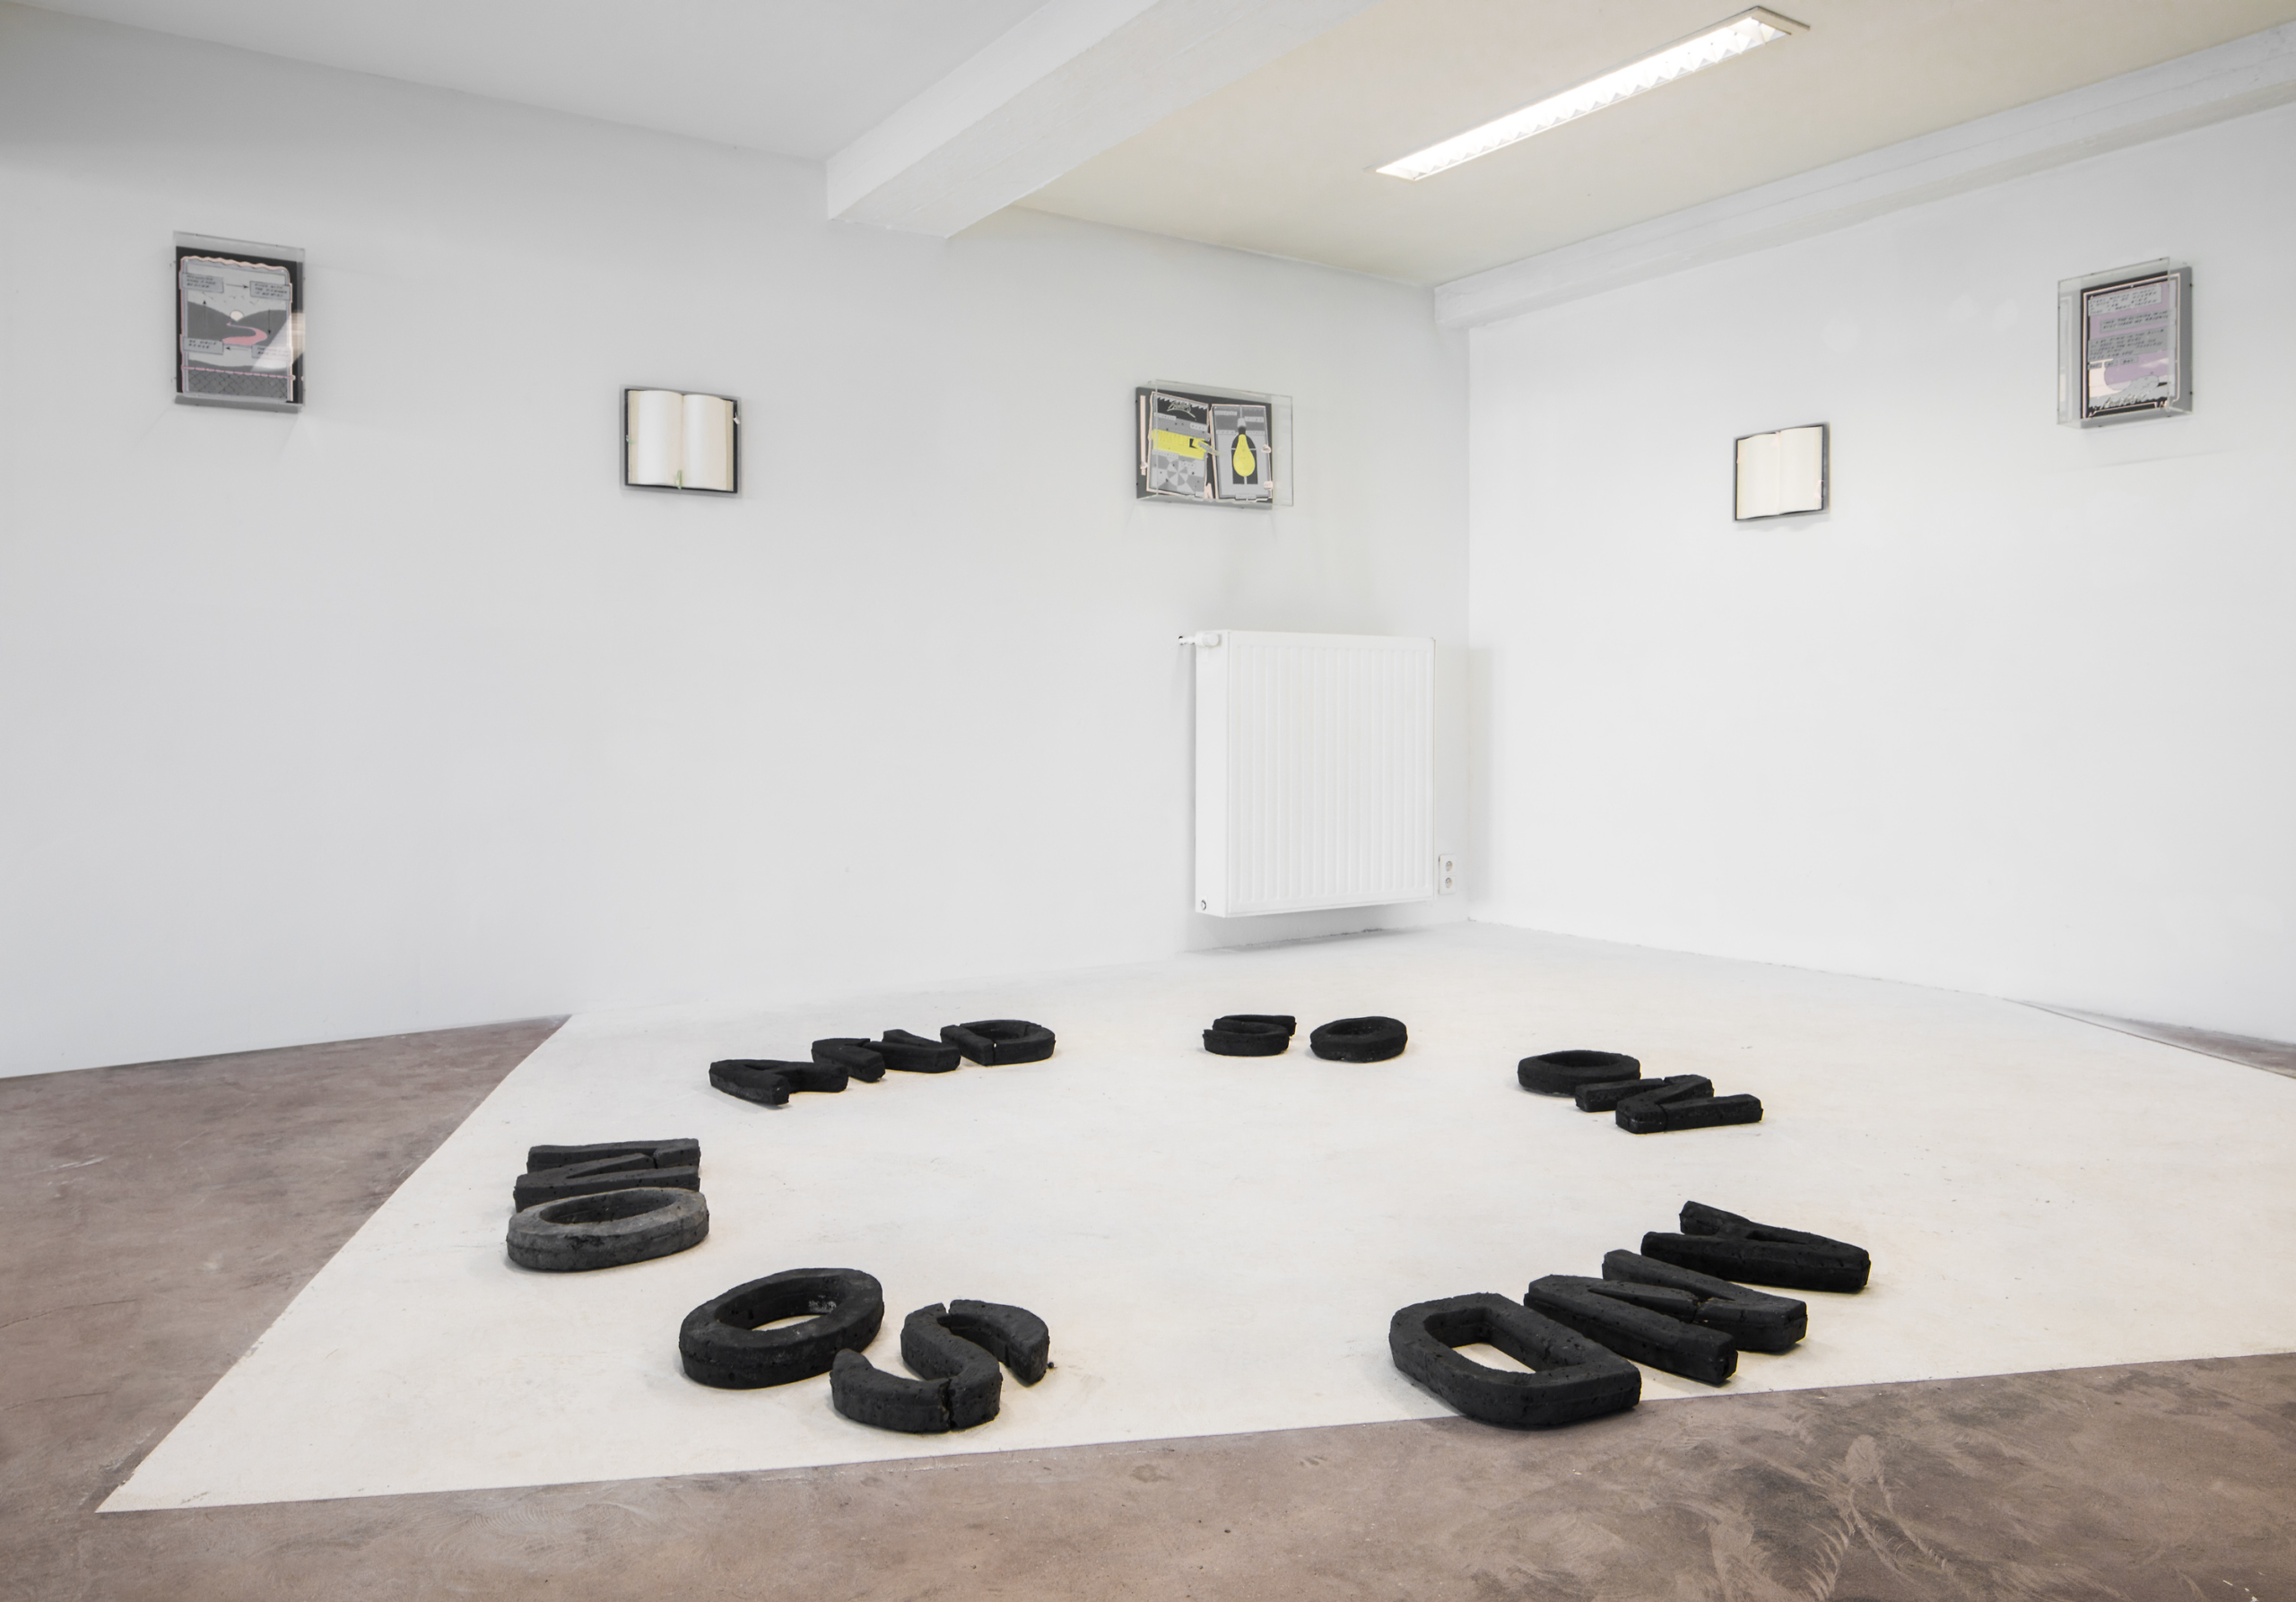 Charlie Godet Thomas, And So On And So On, 2018. Installation view. POPPOSITIONS 2018. Photographer: Jeroen Verrecht.